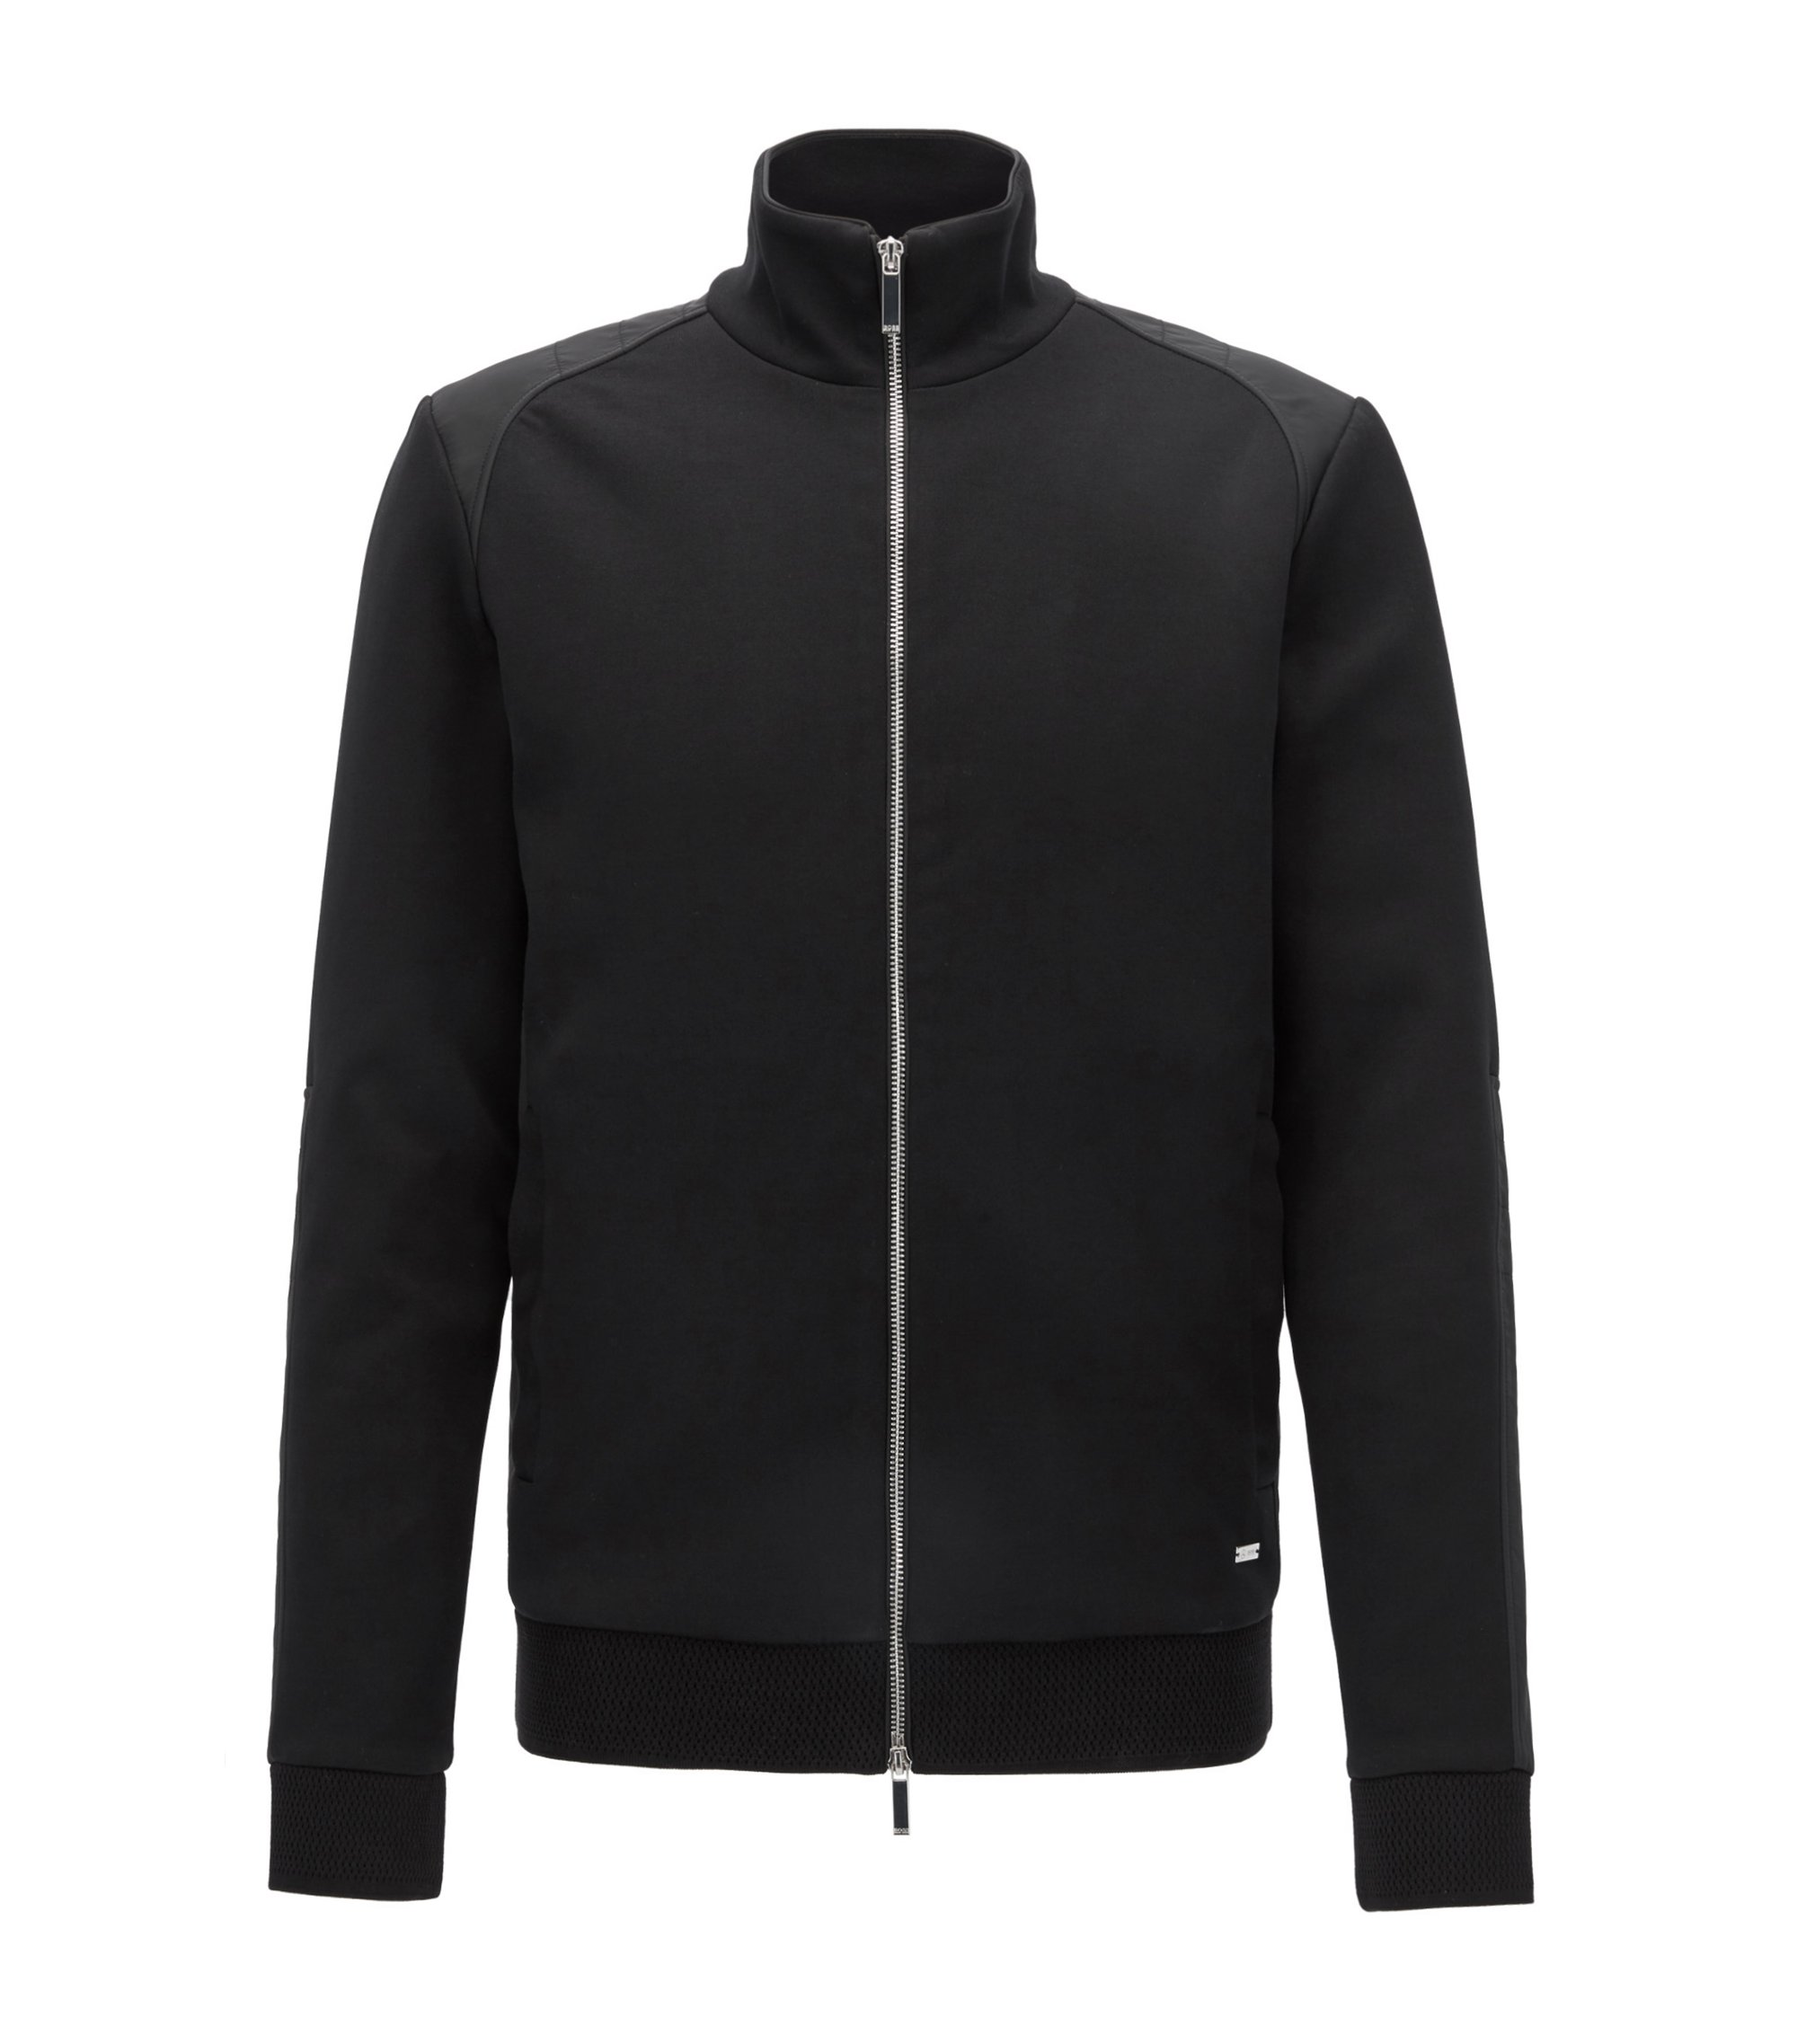 Cotton Blend Full-Zip Jacket | Soule, Black